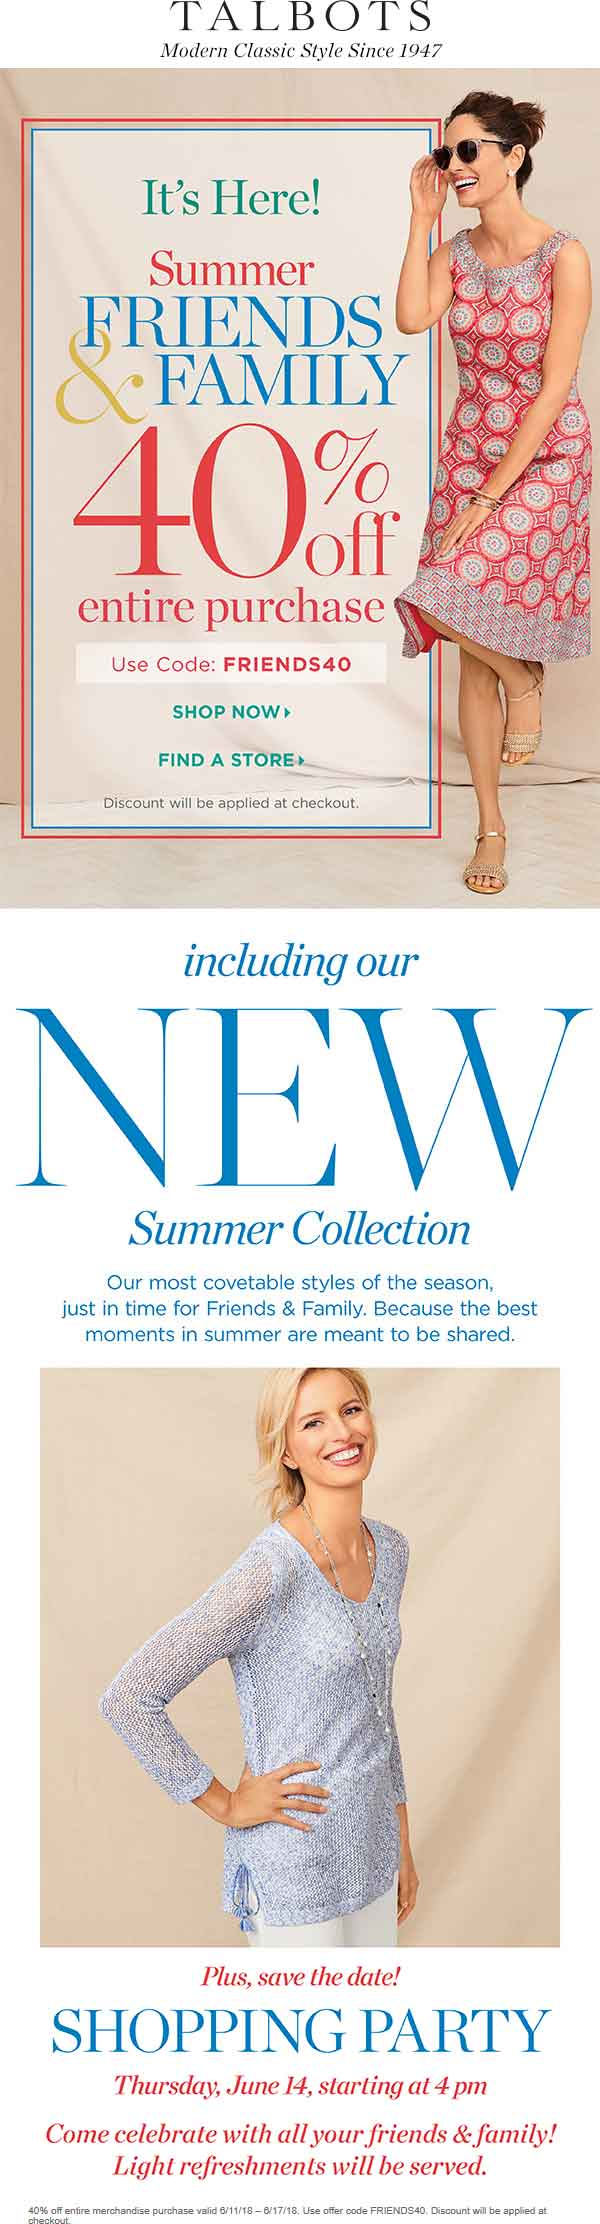 Talbots Coupon October 2019 40% off at Talbots, or online via promo code FRIENDS40